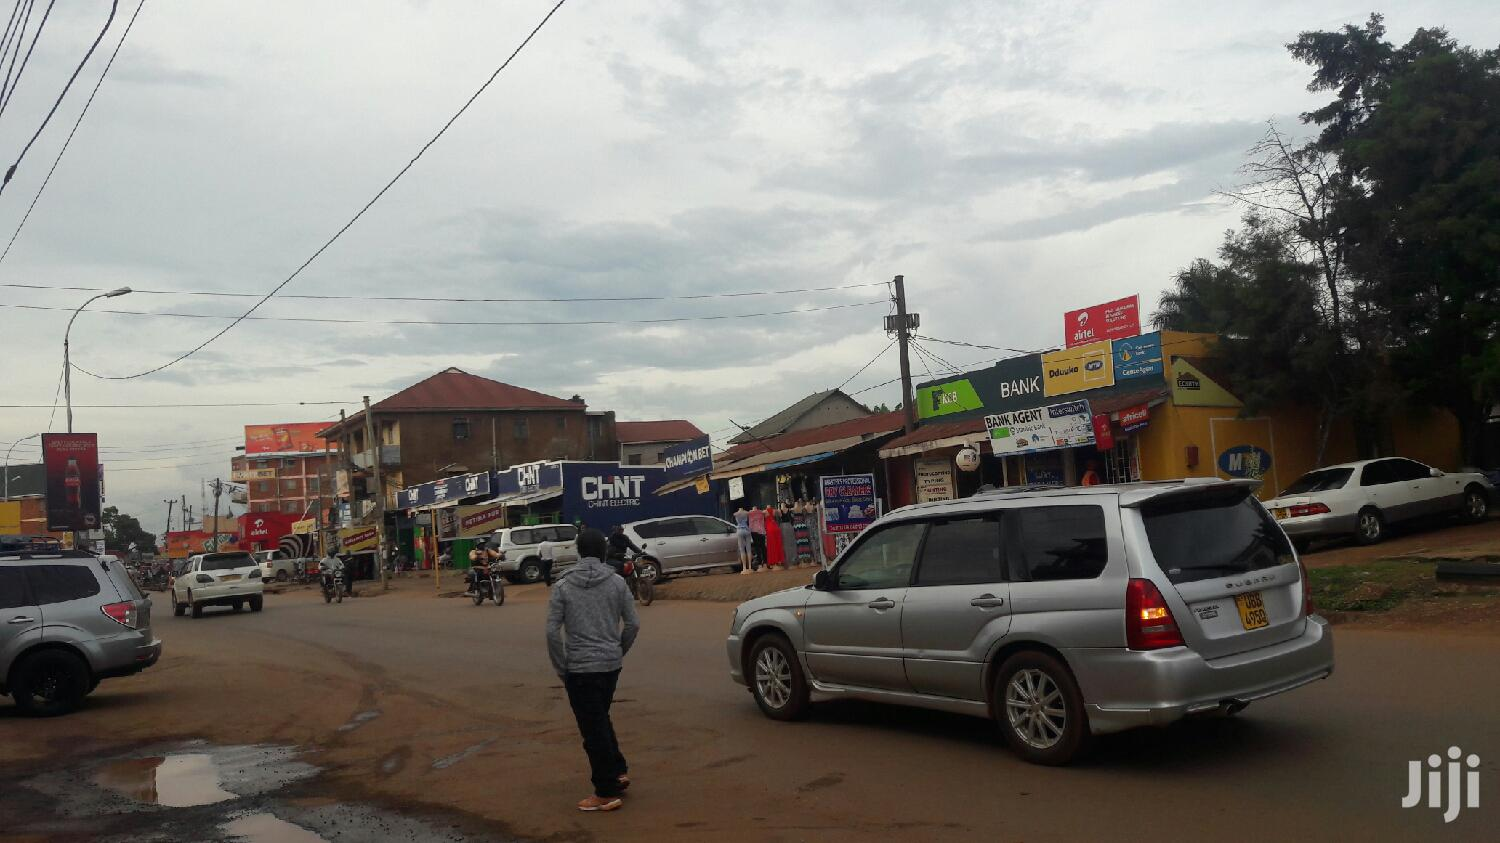 Commercial Plot for Sale on Bukoto Kisaasi Road | Land & Plots For Sale for sale in Kampala, Central Region, Uganda